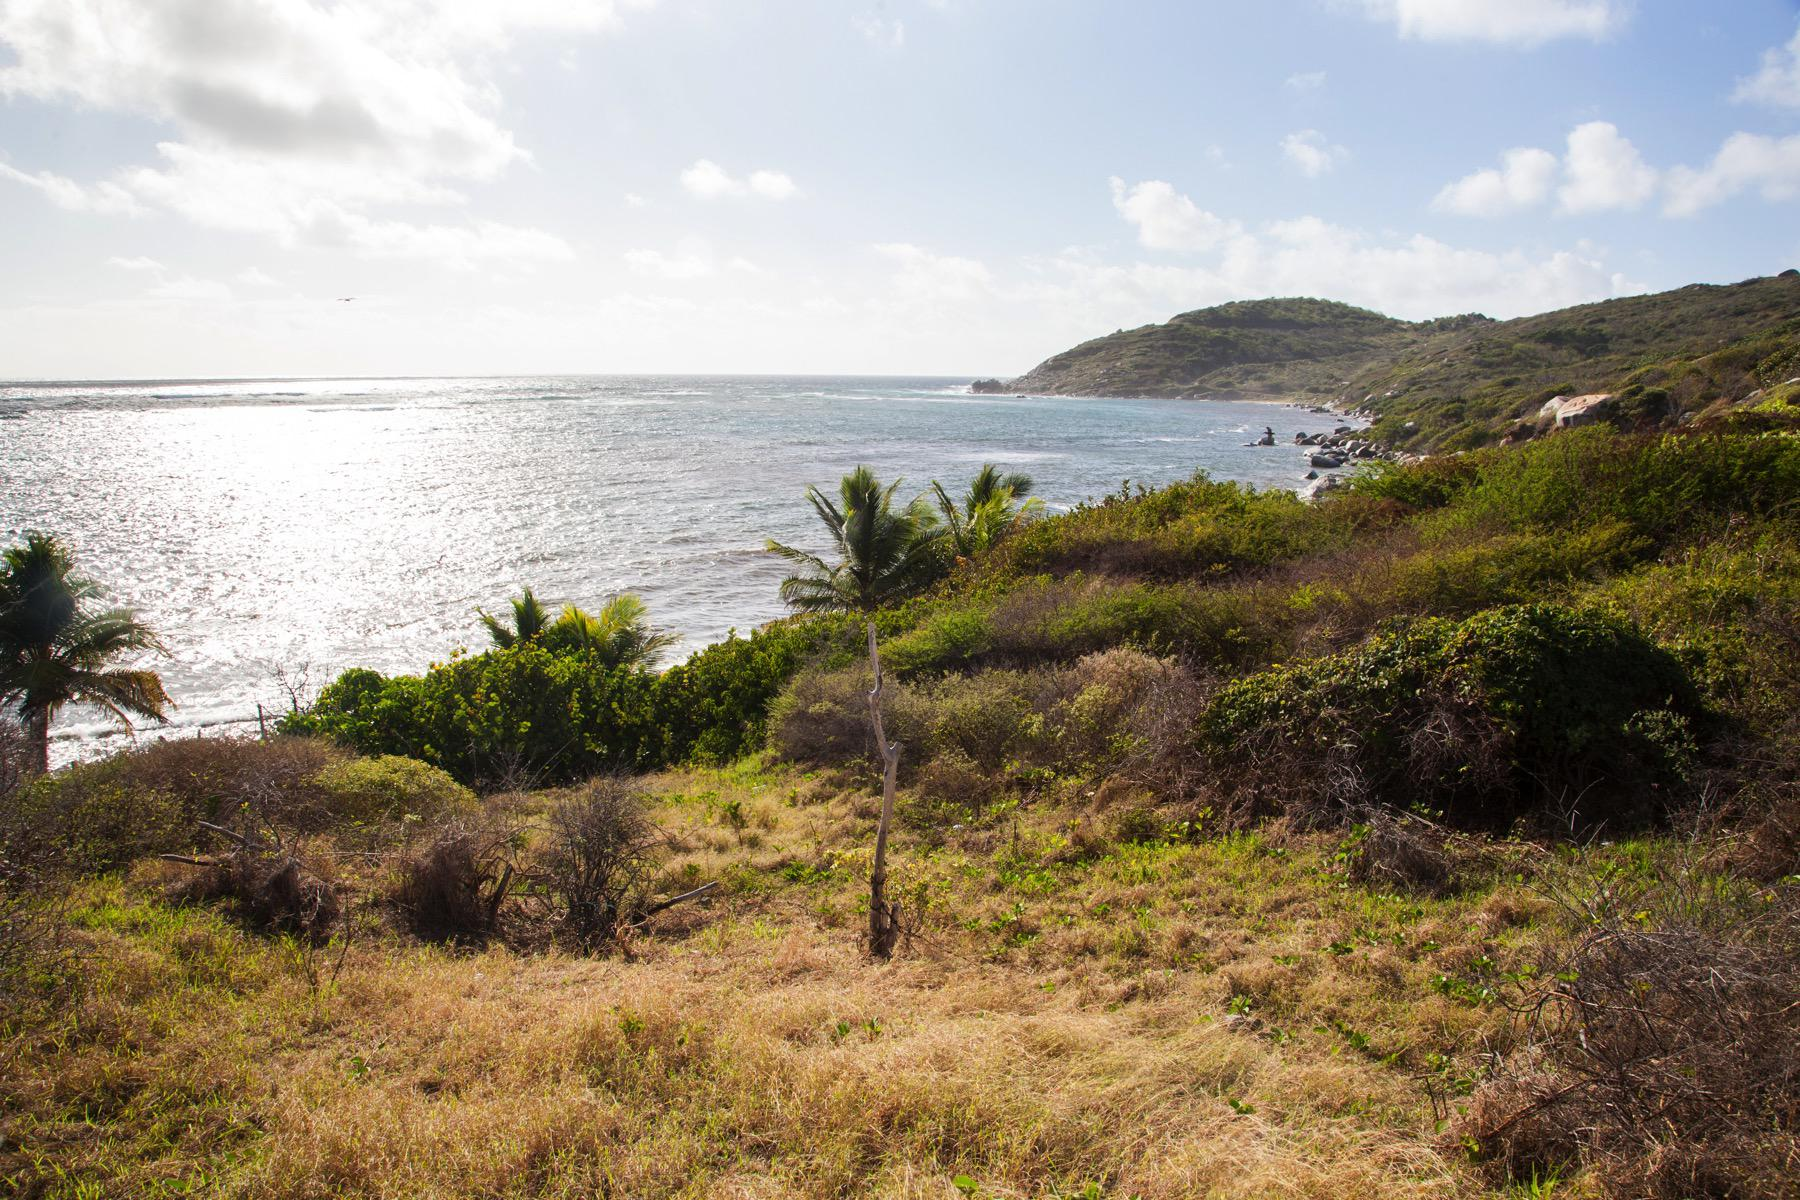 Terrain pour l Vente à Windy Hill Waterfront Land 401 Windy Hill, Virgin Gorda, Iles Vierges Britanniques